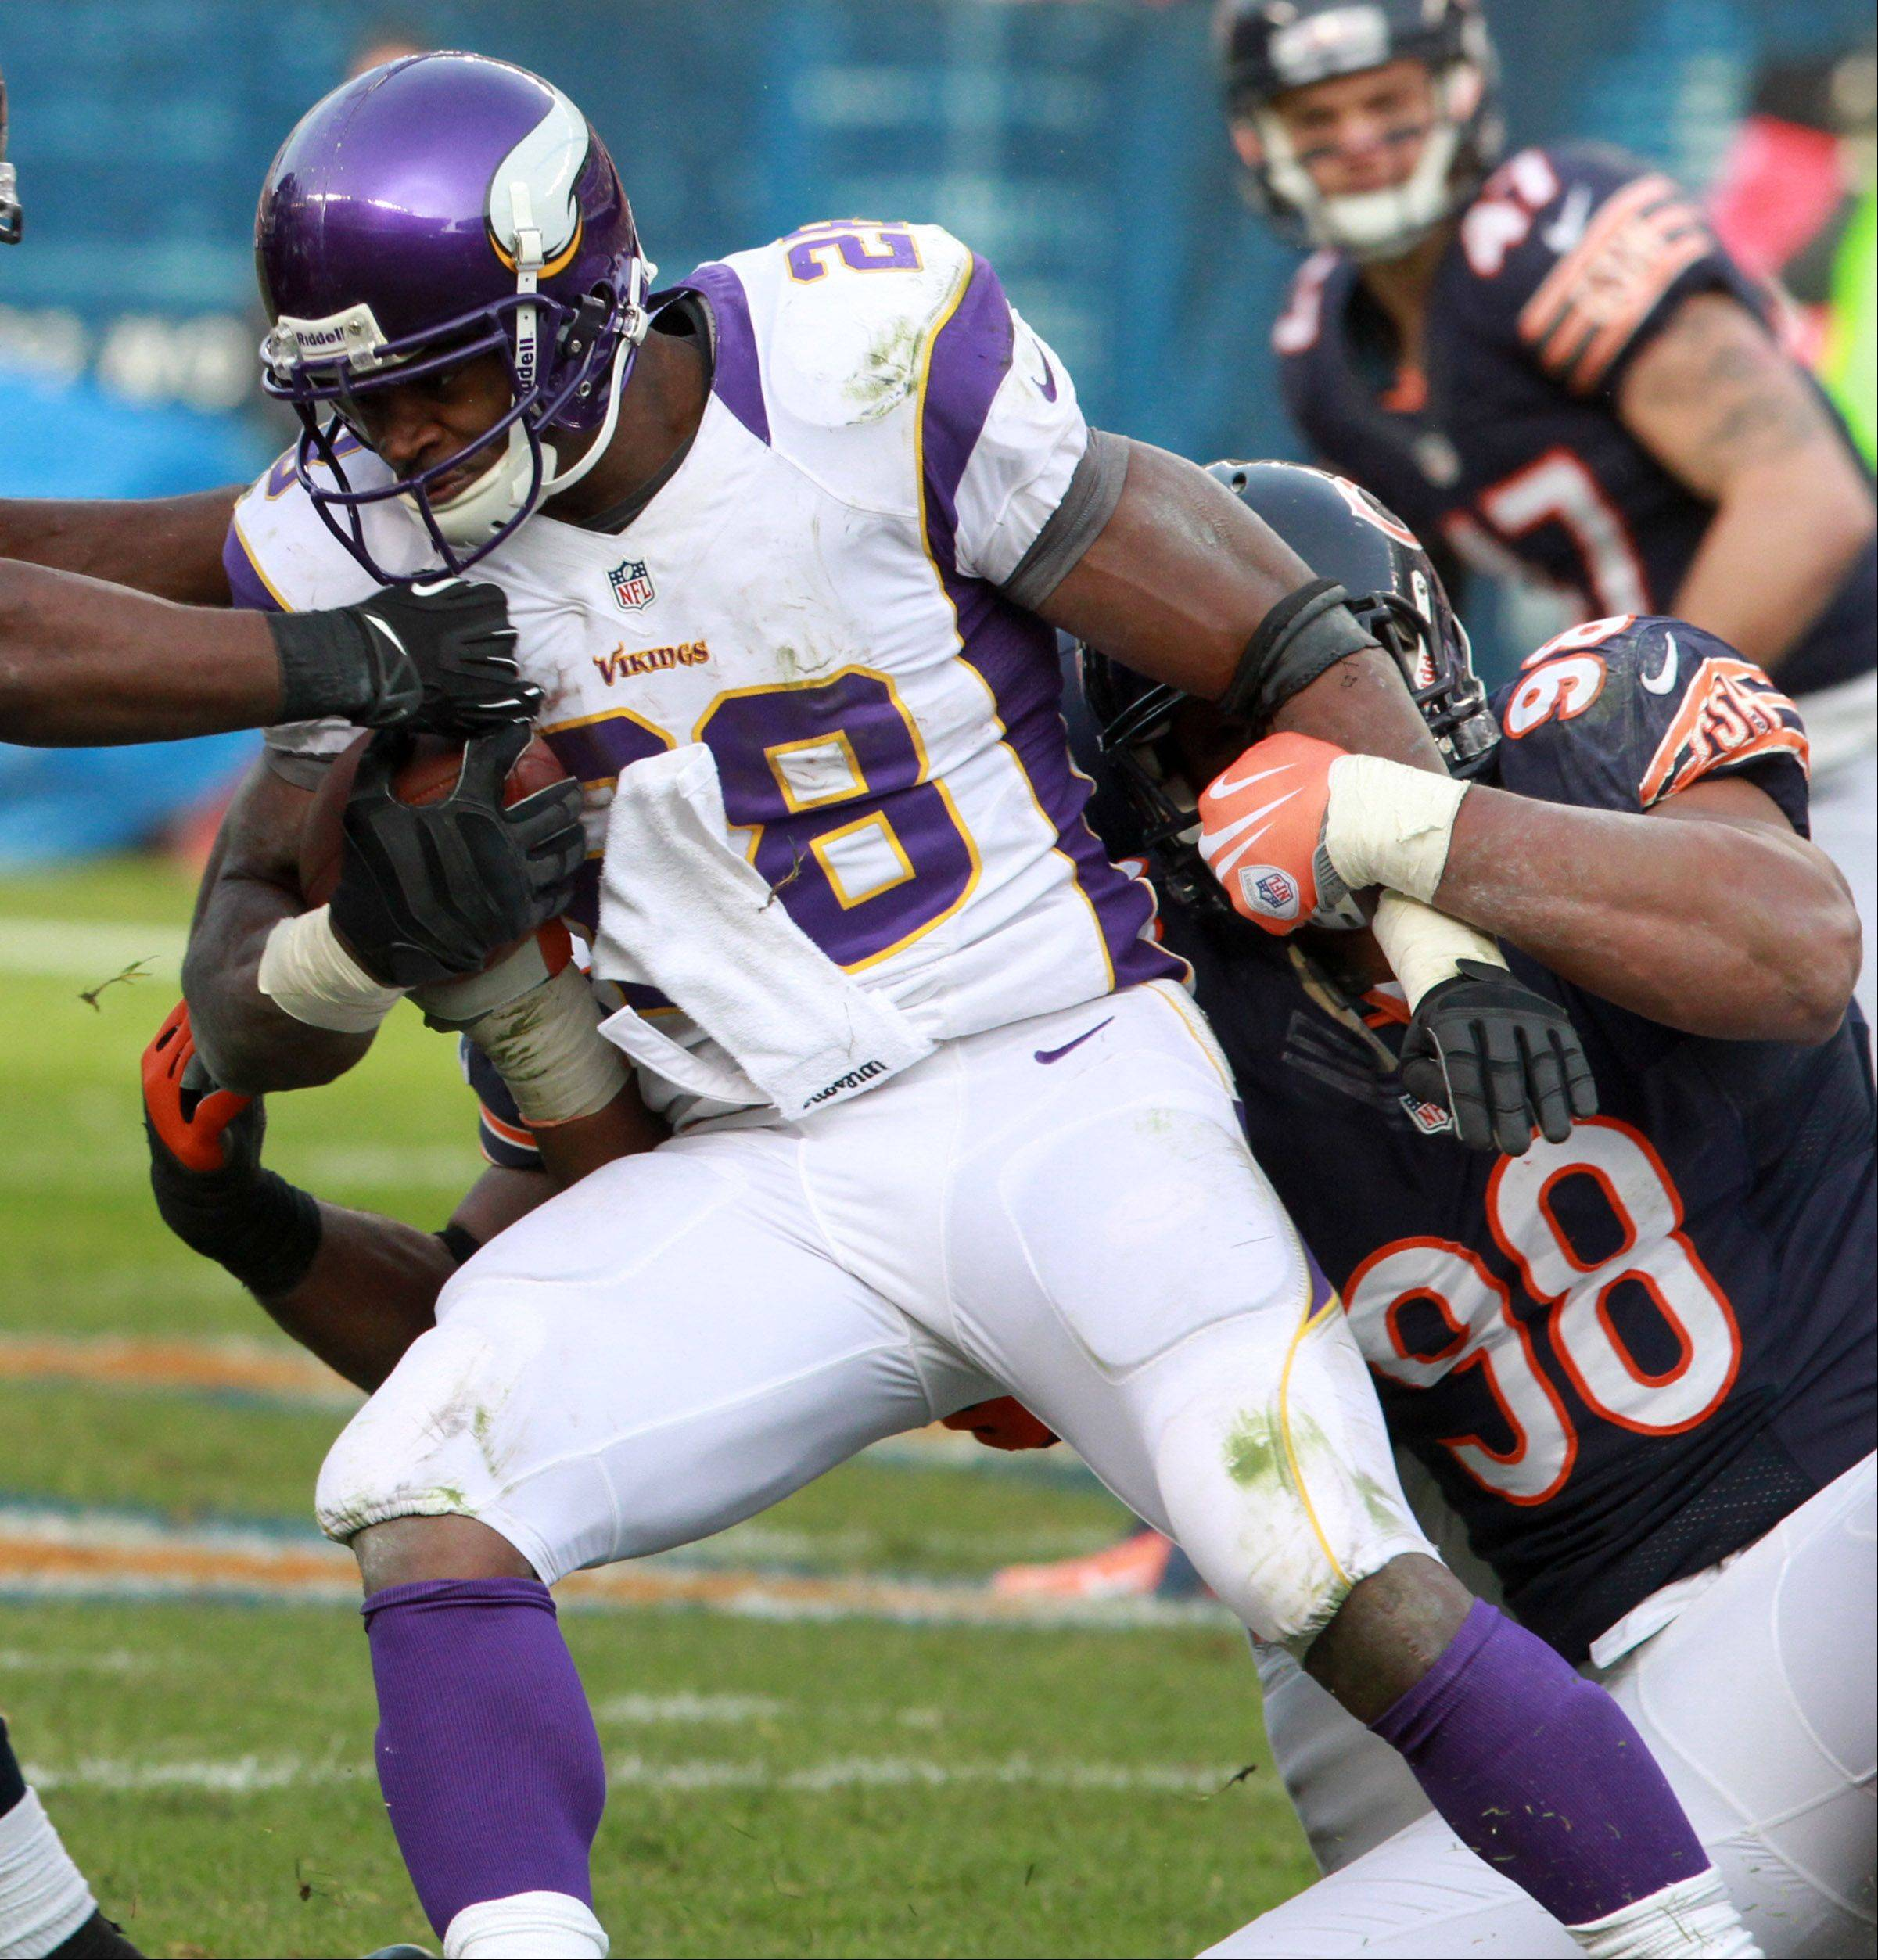 Vikings running back Adrian Peterson is dragged down by Bears defensive end Corey Wootton at Soldier Field Sunday.